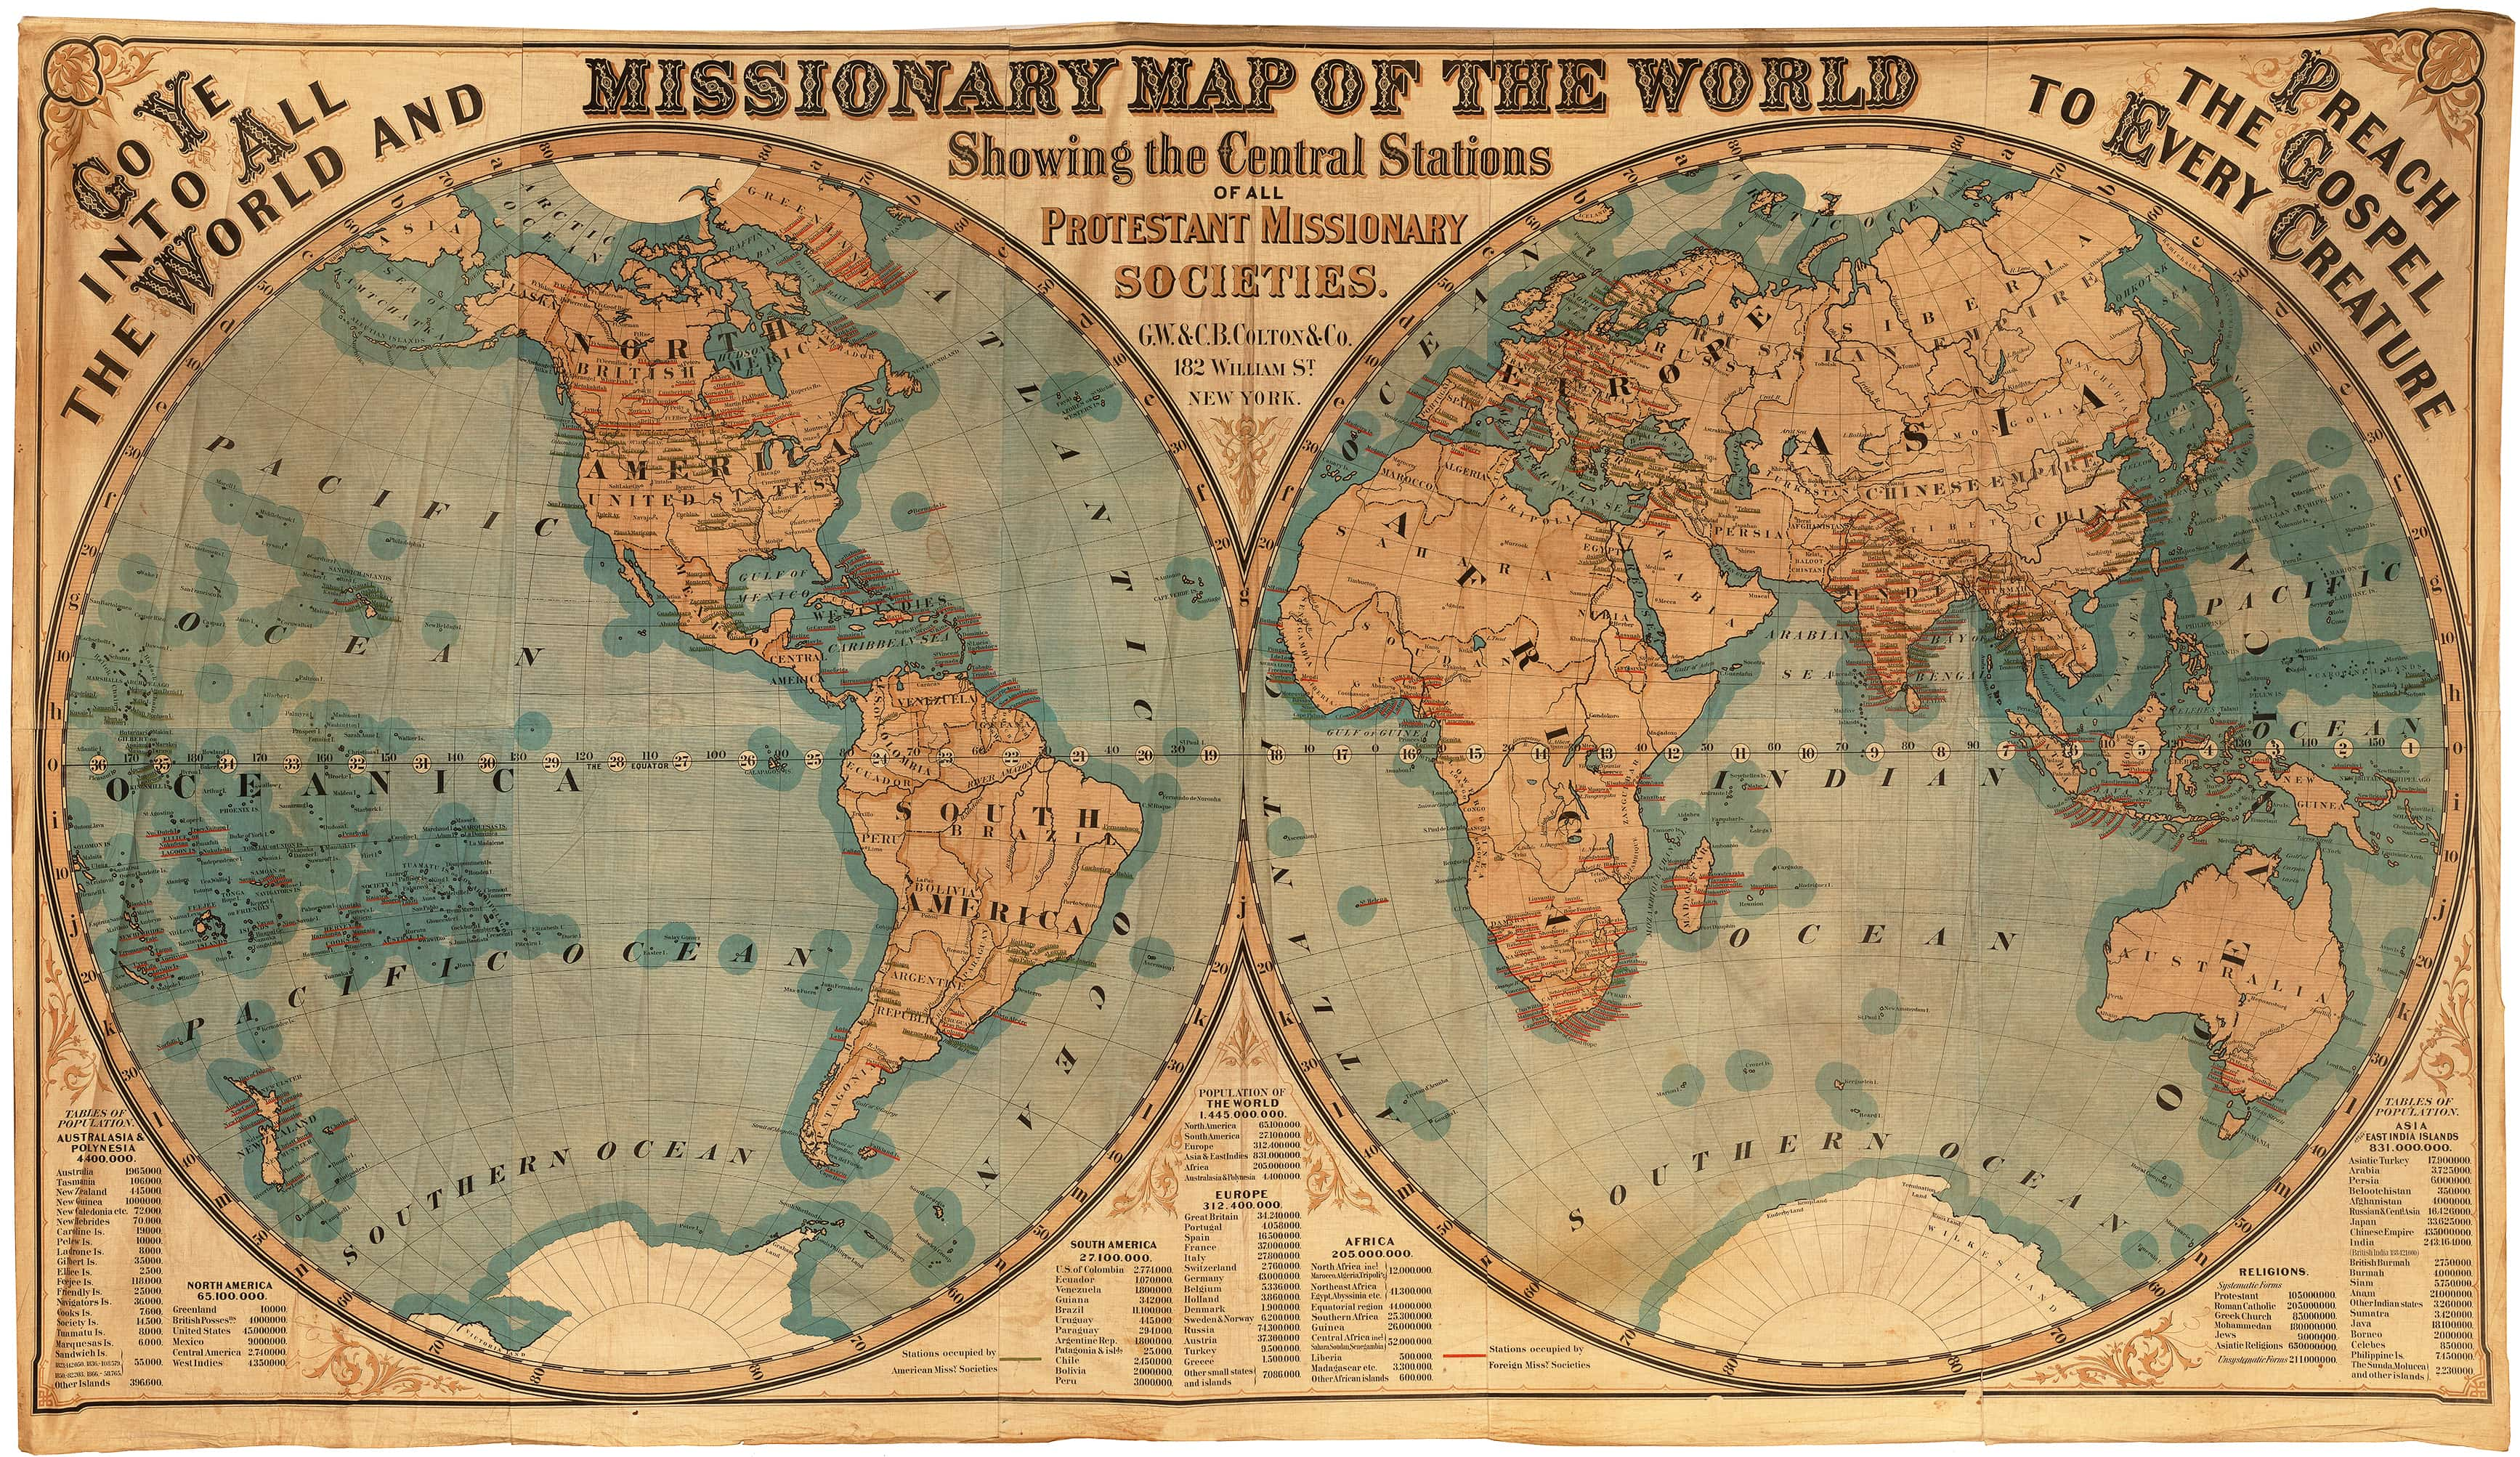 Mammoth 1878 Missionary Map of the World on cloth - Rare ...